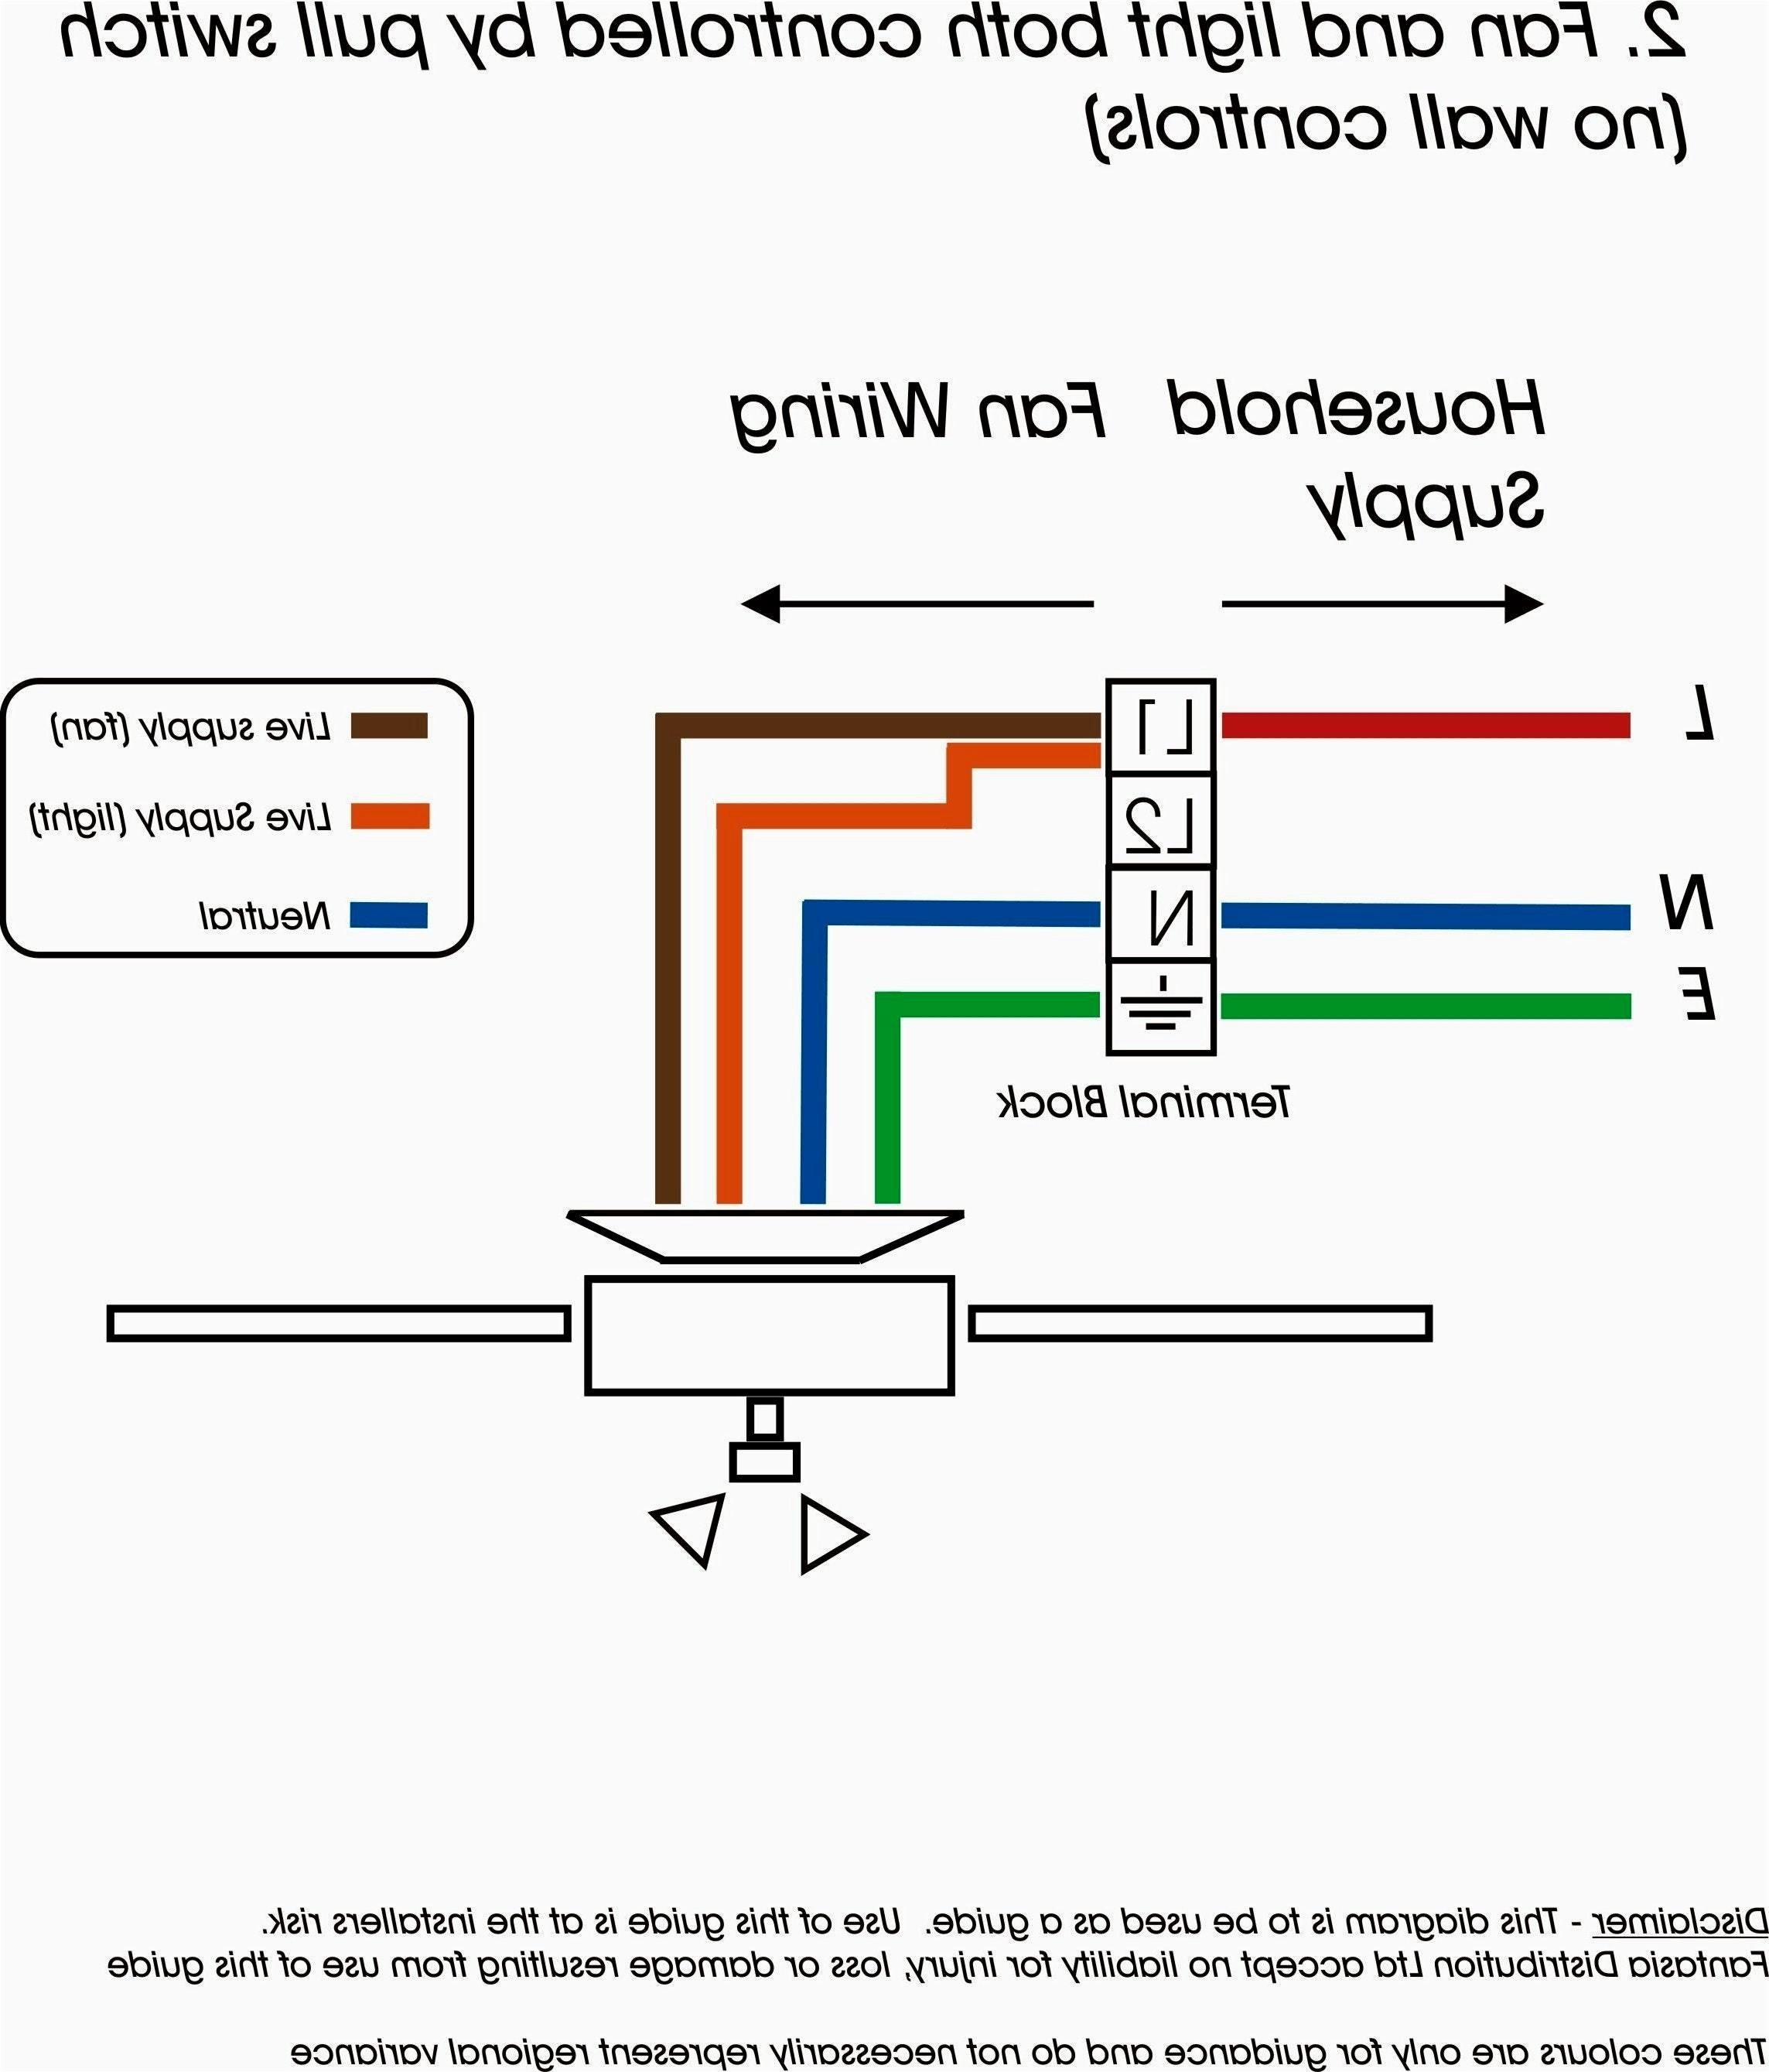 Toyota Power Window Switch Wiring Diagram Wiring Diagram for Trailer Brakes Archives Elgrifo Best Wiring Of Toyota Power Window Switch Wiring Diagram